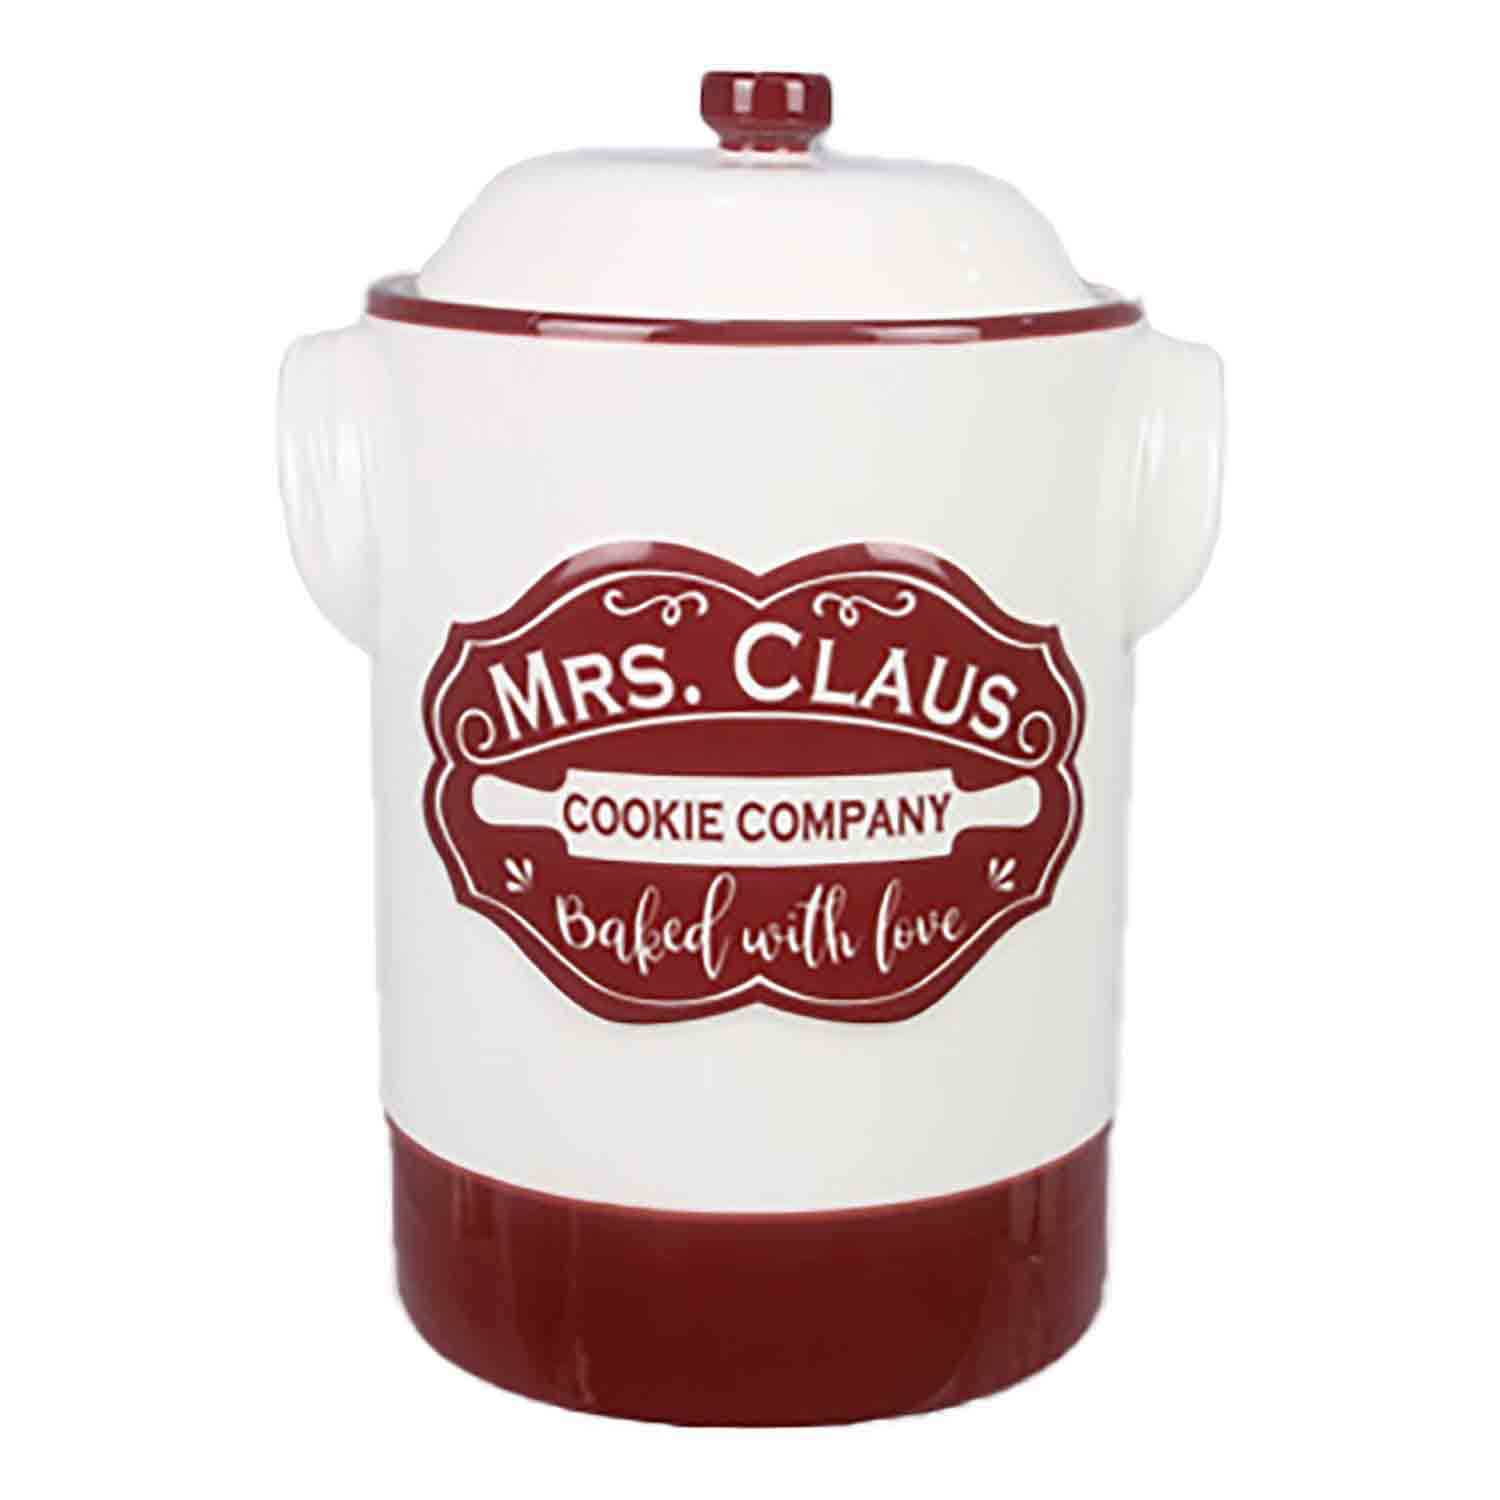 Mrs Claus Cookie Company Jar